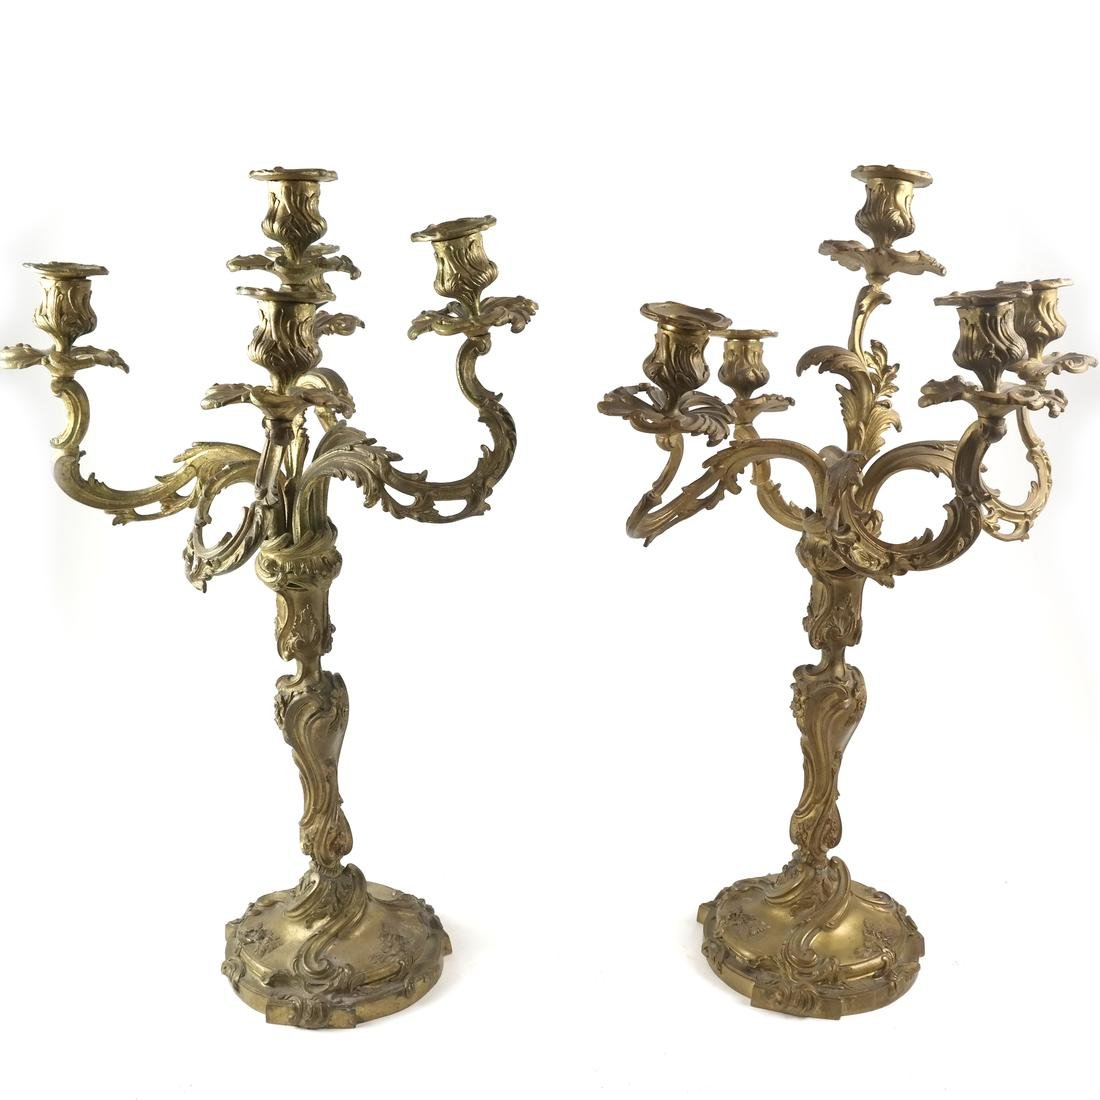 Pair of French Bronze Candelabra